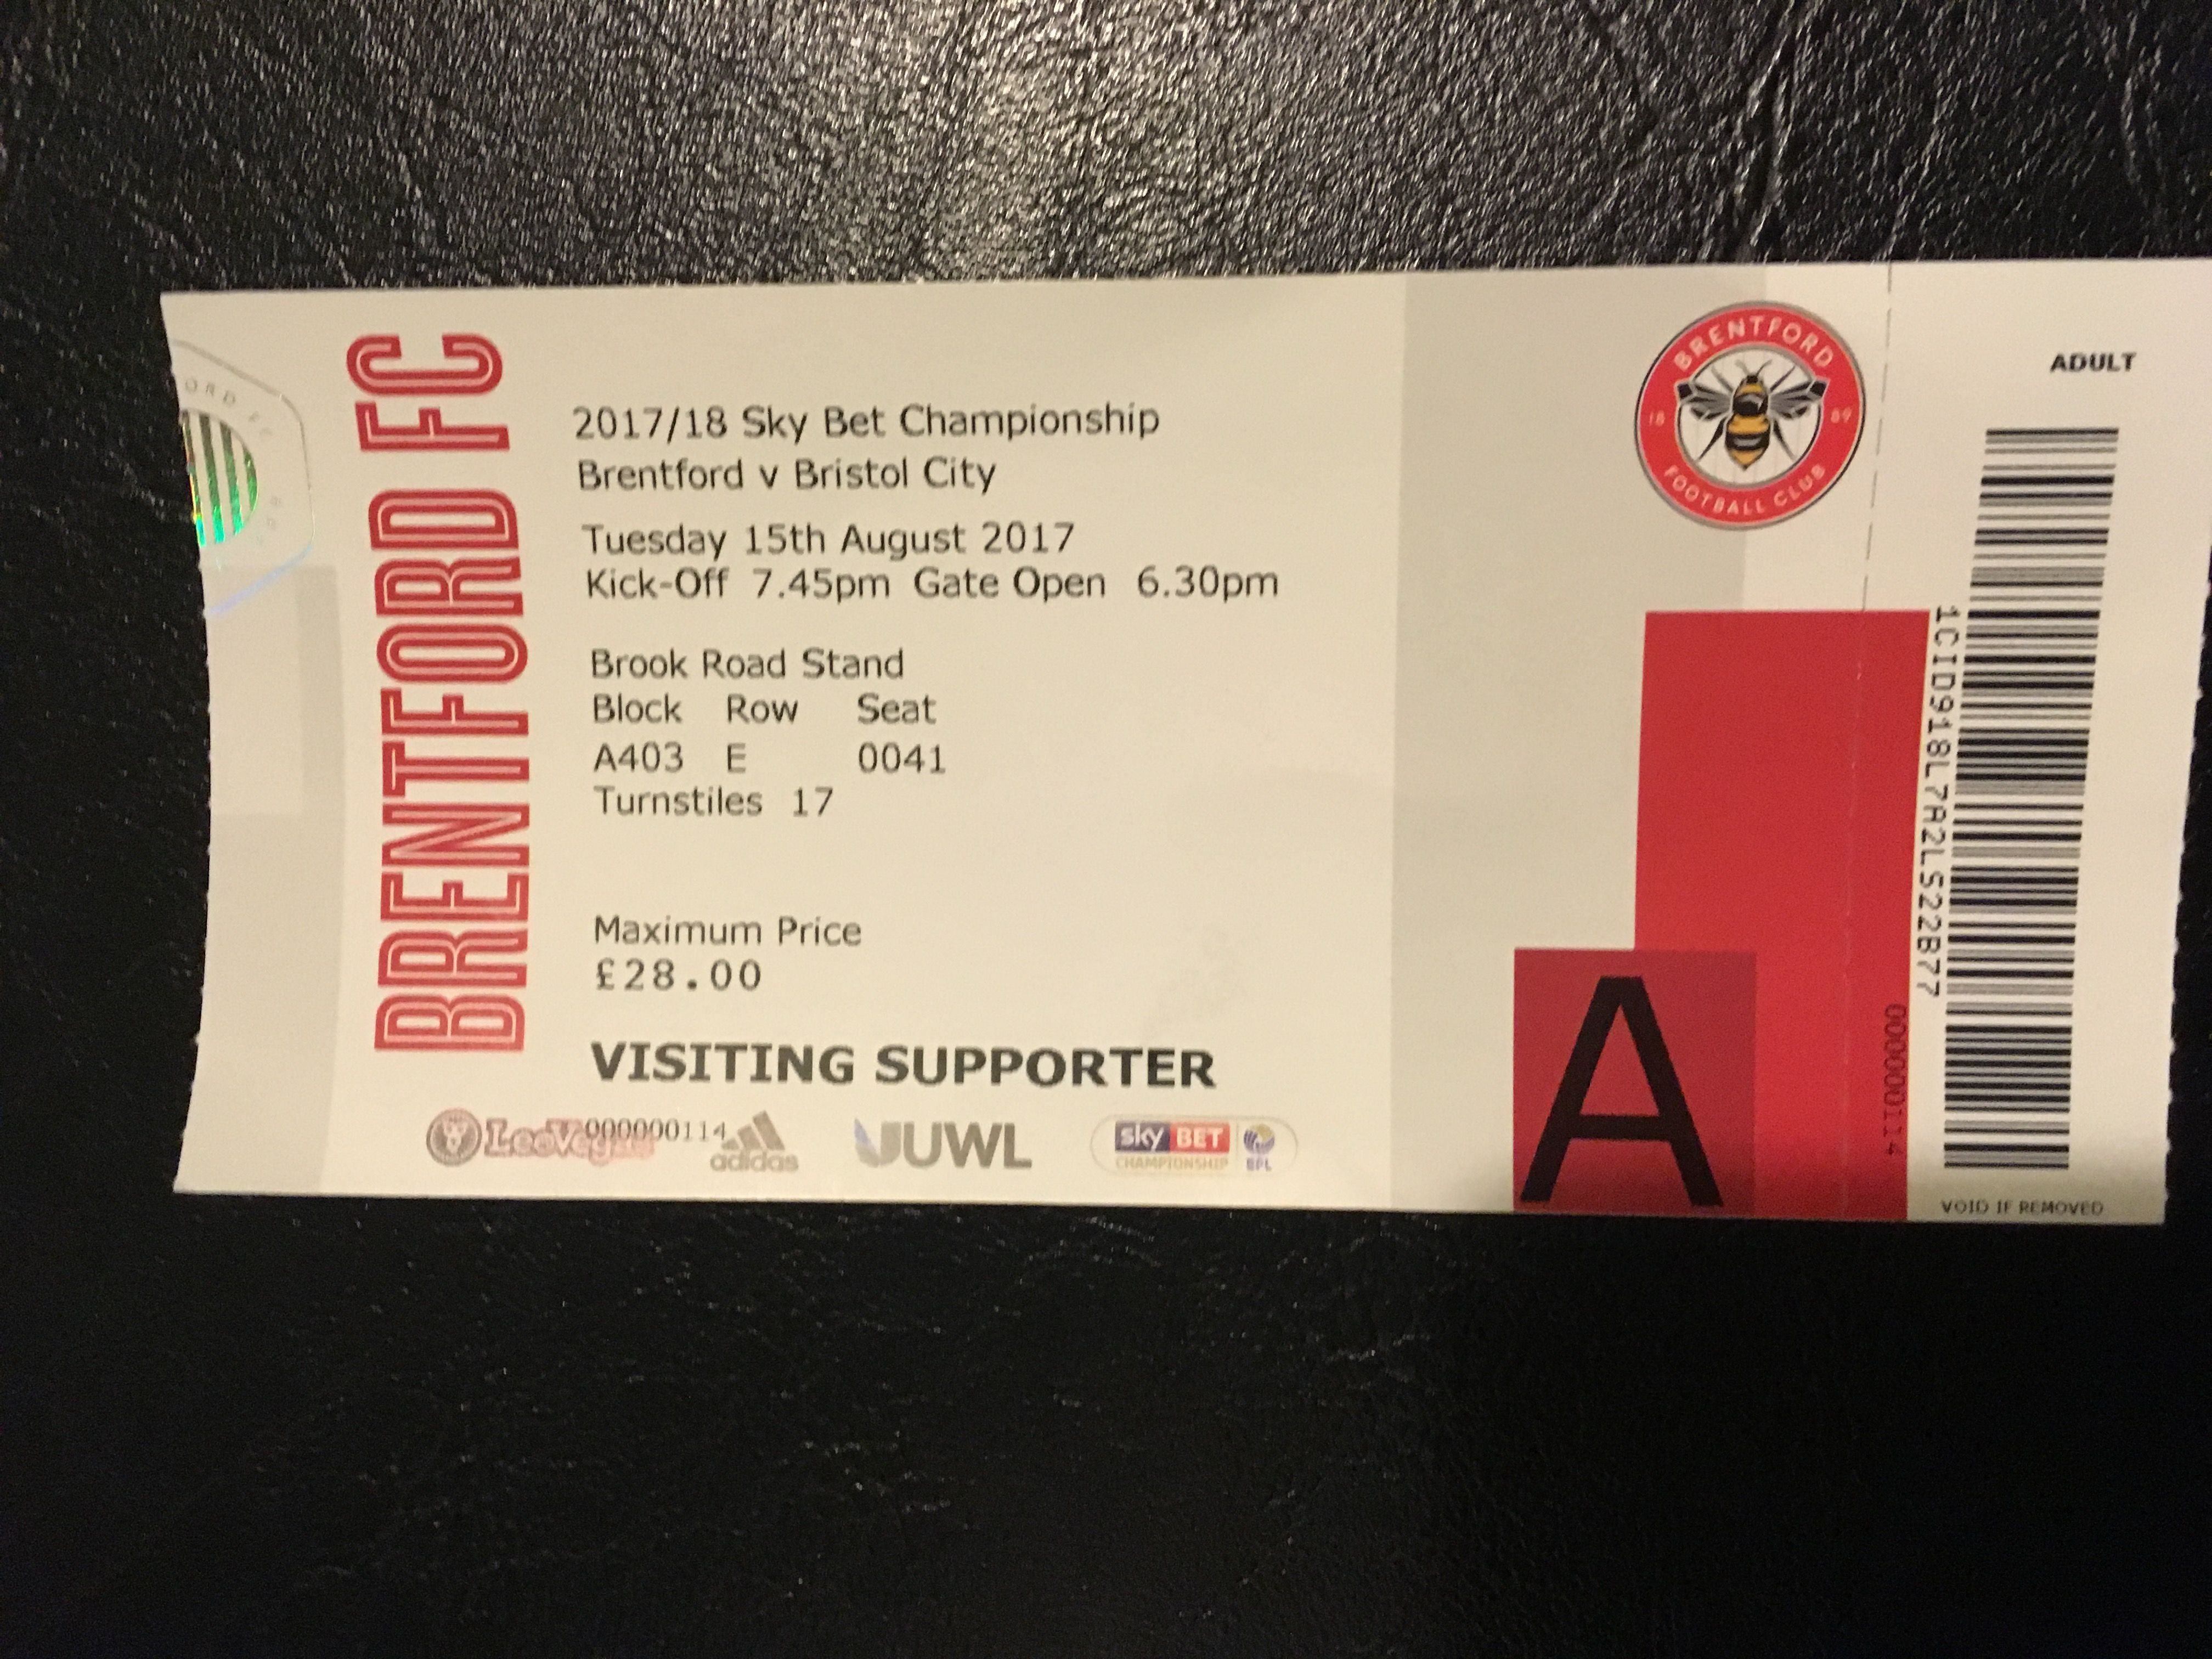 Brentford v Bristol City 15-08-17 Ticket